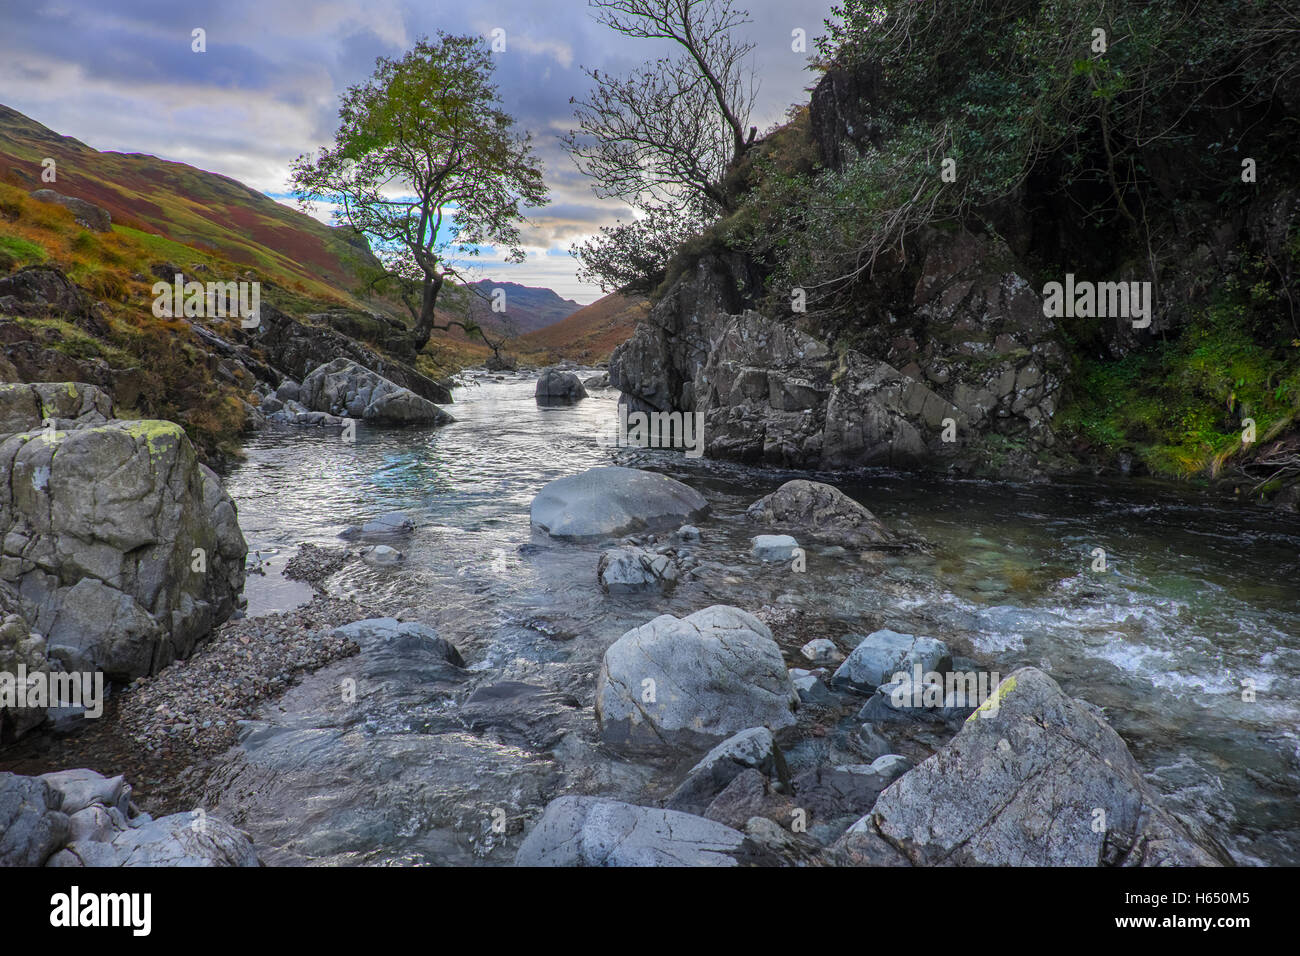 The River Esk in the upper reaches of Eskdale in the Lake District National Park,Cumbria - Stock Image